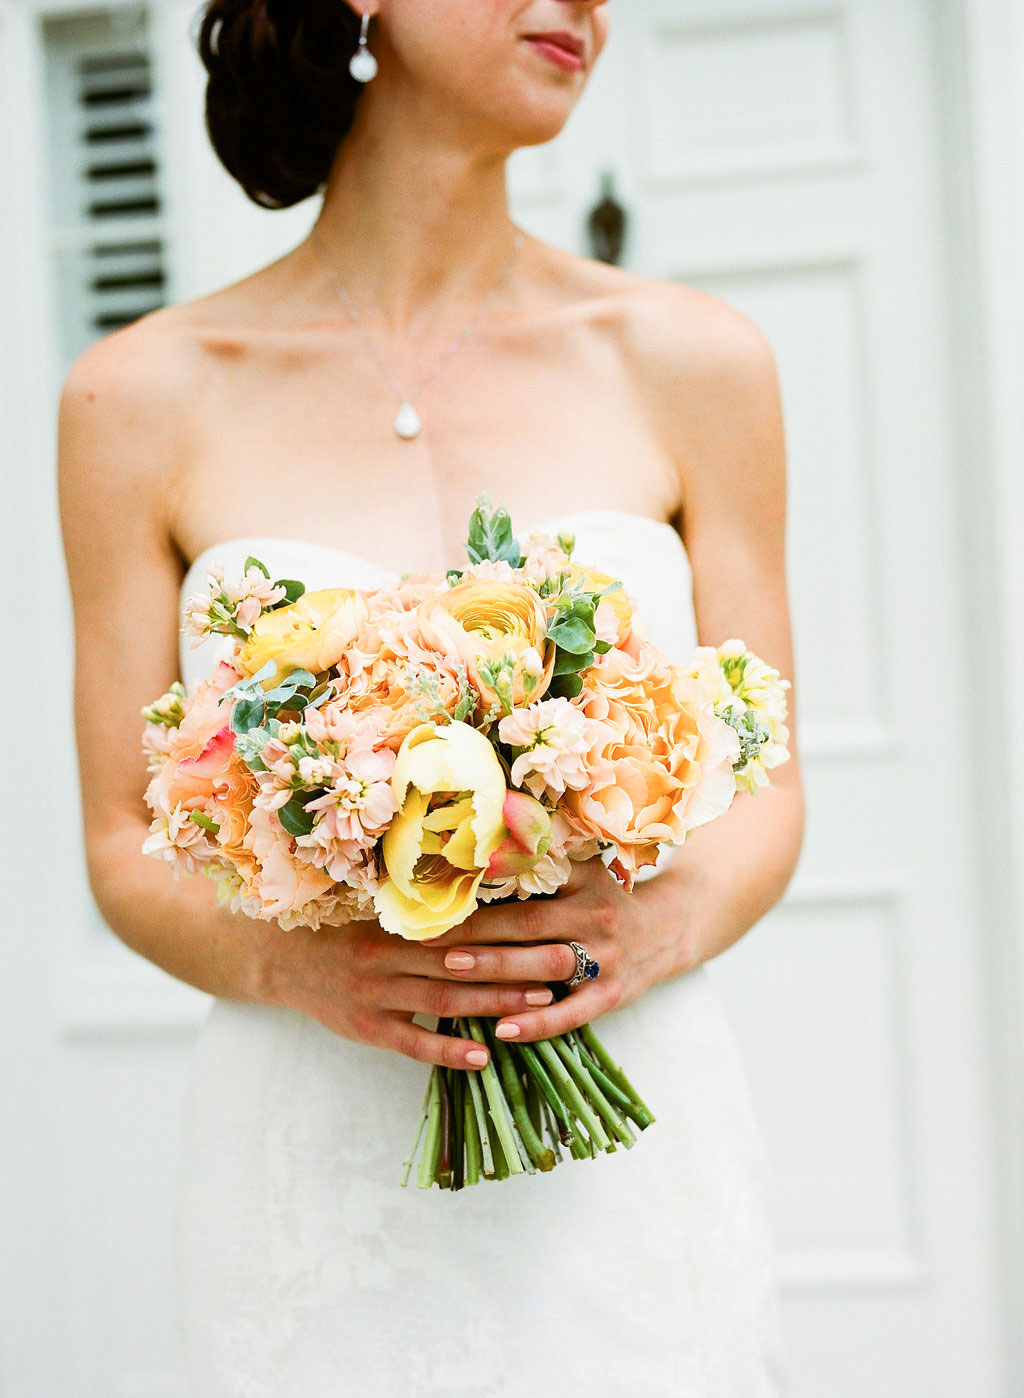 Fall wedding bouquet ideas yellow and orange flowers ilana ashley events